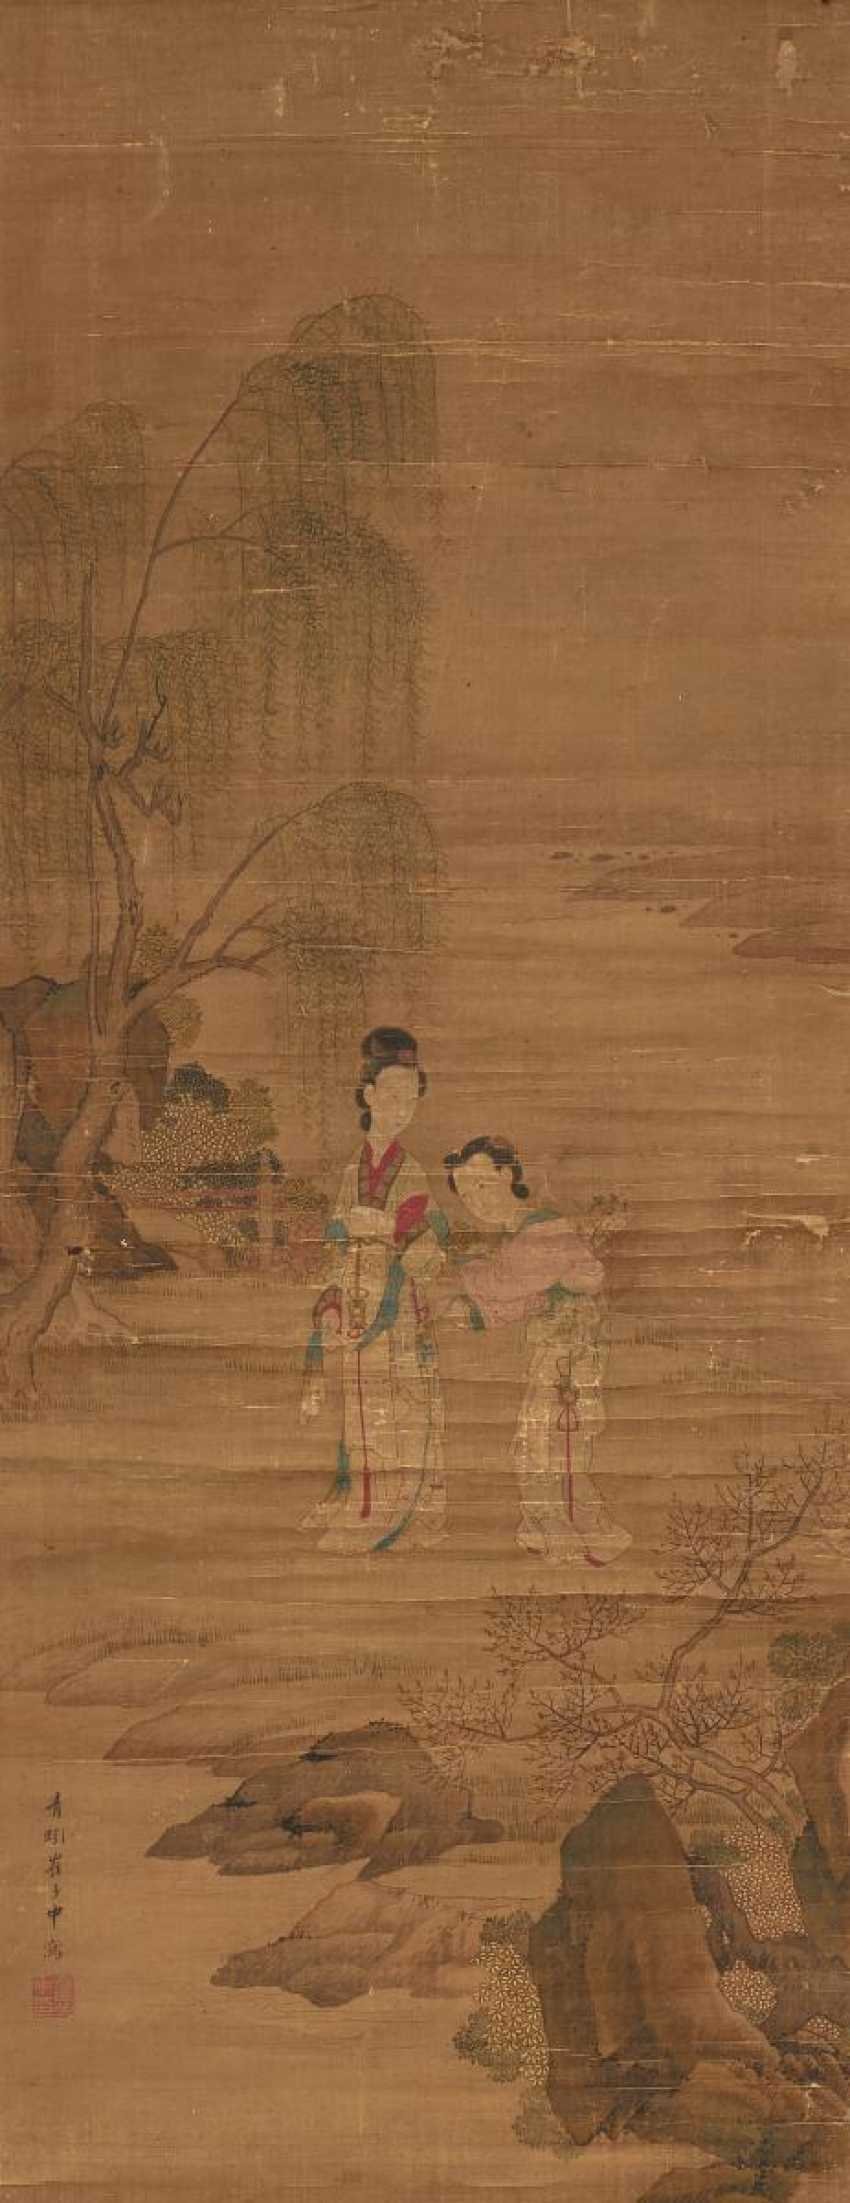 Cui Zizhong (1574 - 1644). Elegant lady in the company during a walk in the spring - photo 1